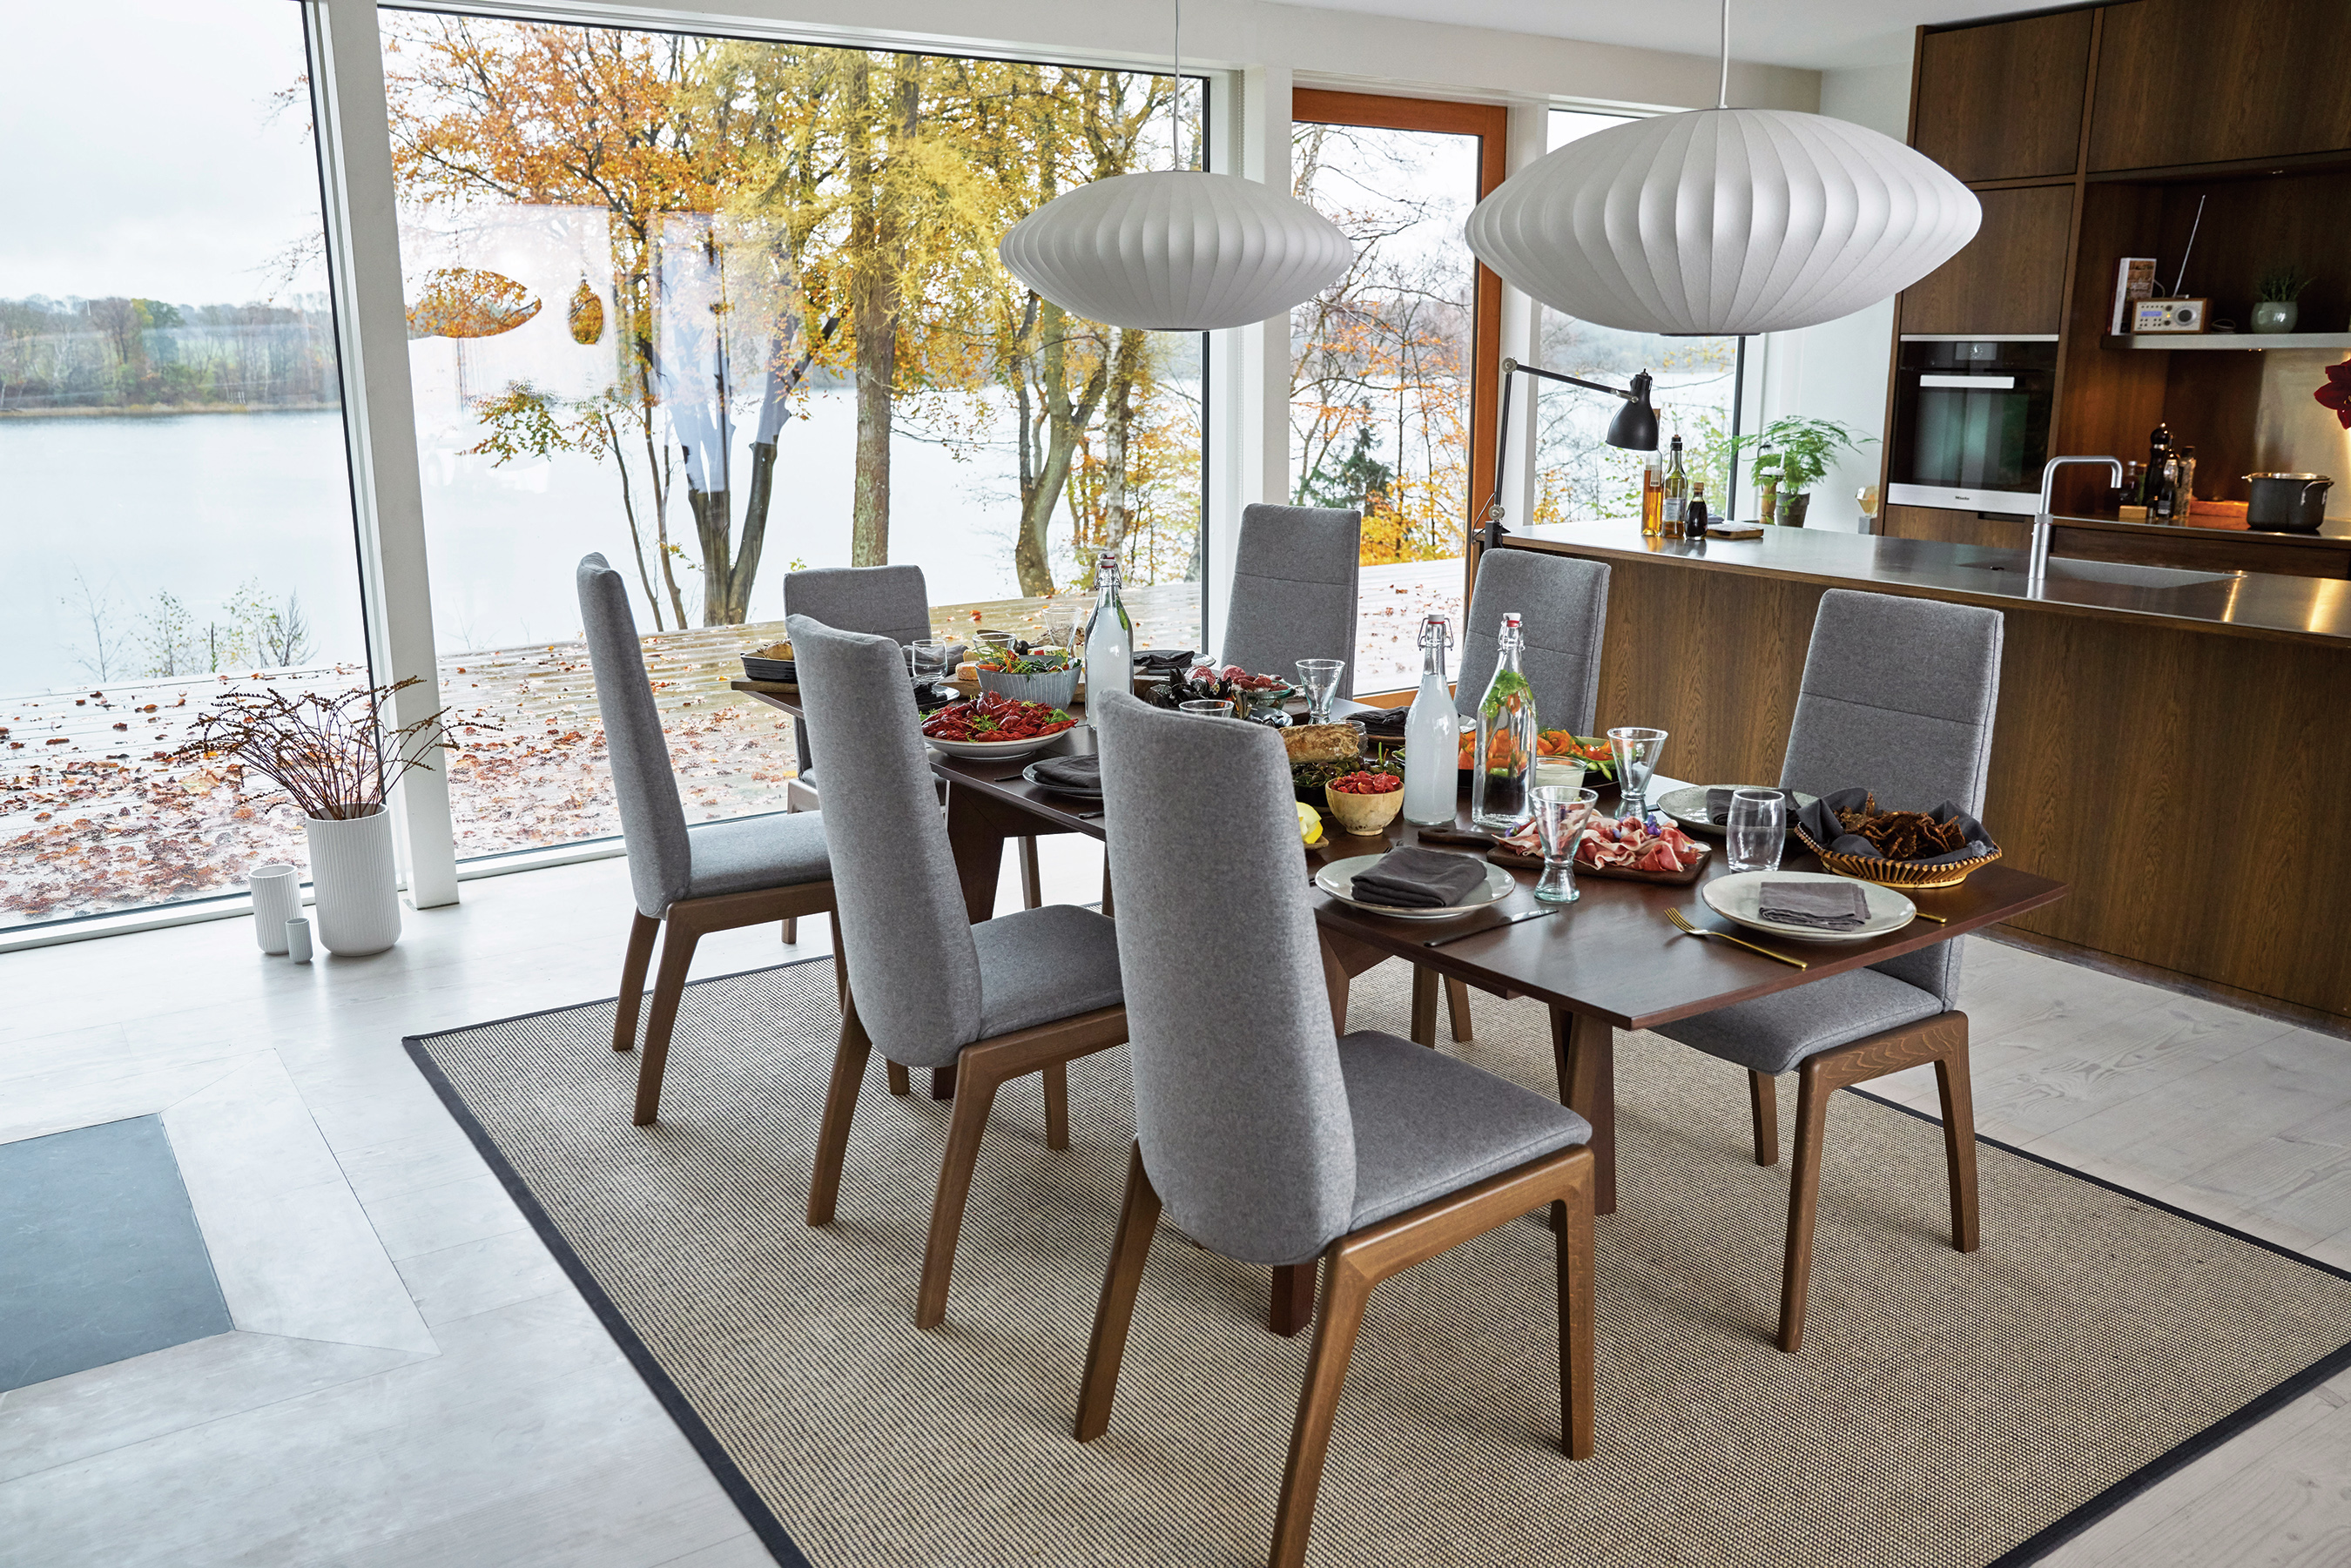 Stressless' Global Collection brings world-famous comfort and functionality to the dining area for a perfectly balanced dining experience. Chairs in Dahlia Grey and table in Madeira Walnut.